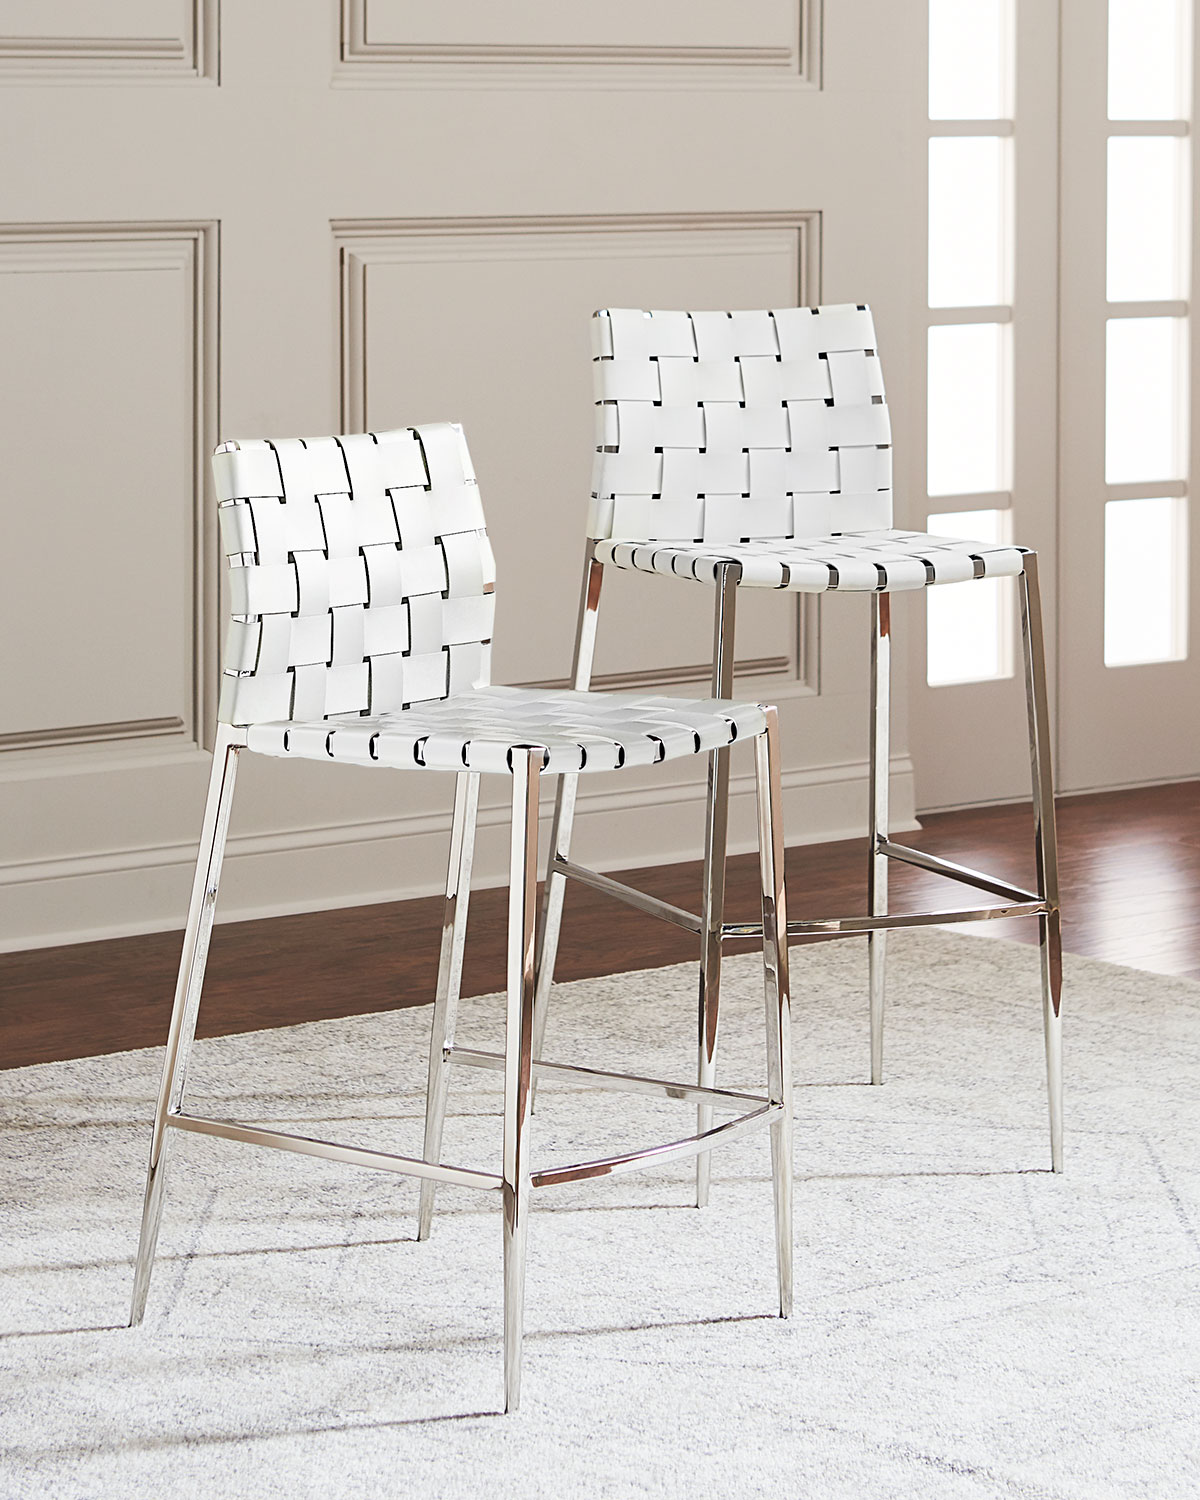 Interlude Home Kennedy Woven Leather Bar Stool, White